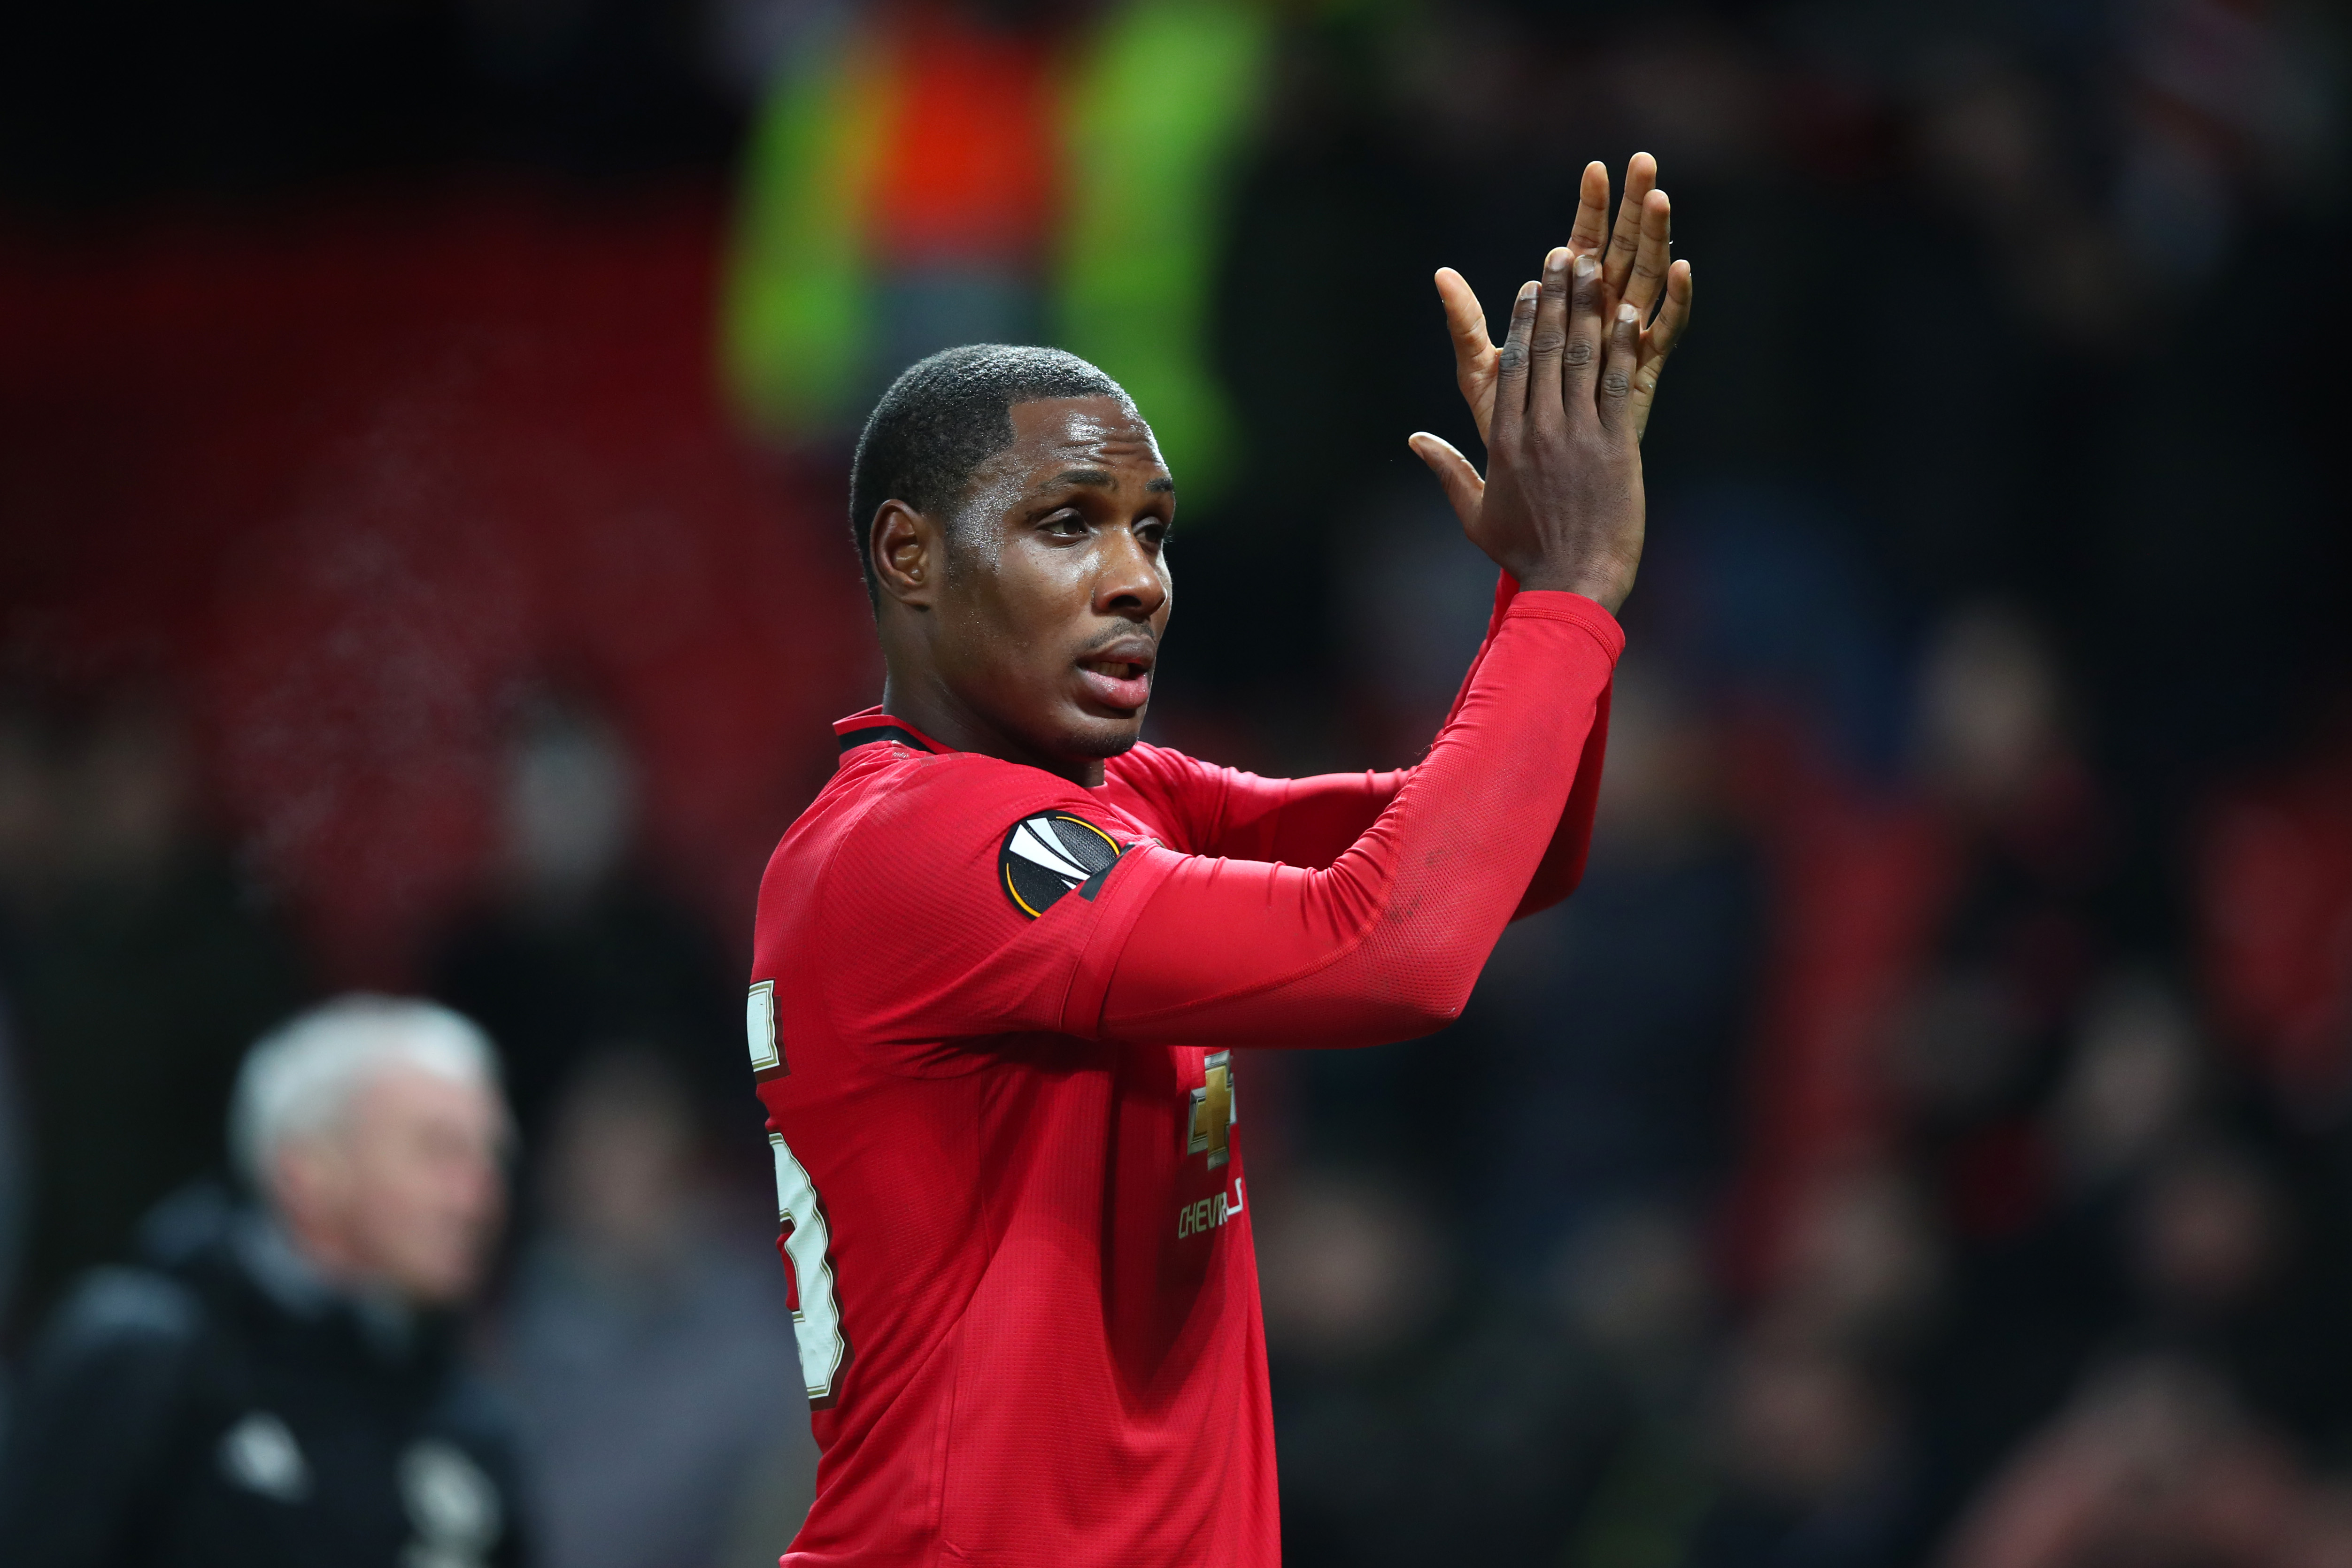 Ighalo got off the mark for Manchester United in midweek (Photo by Clive Brunskill/Getty Images)